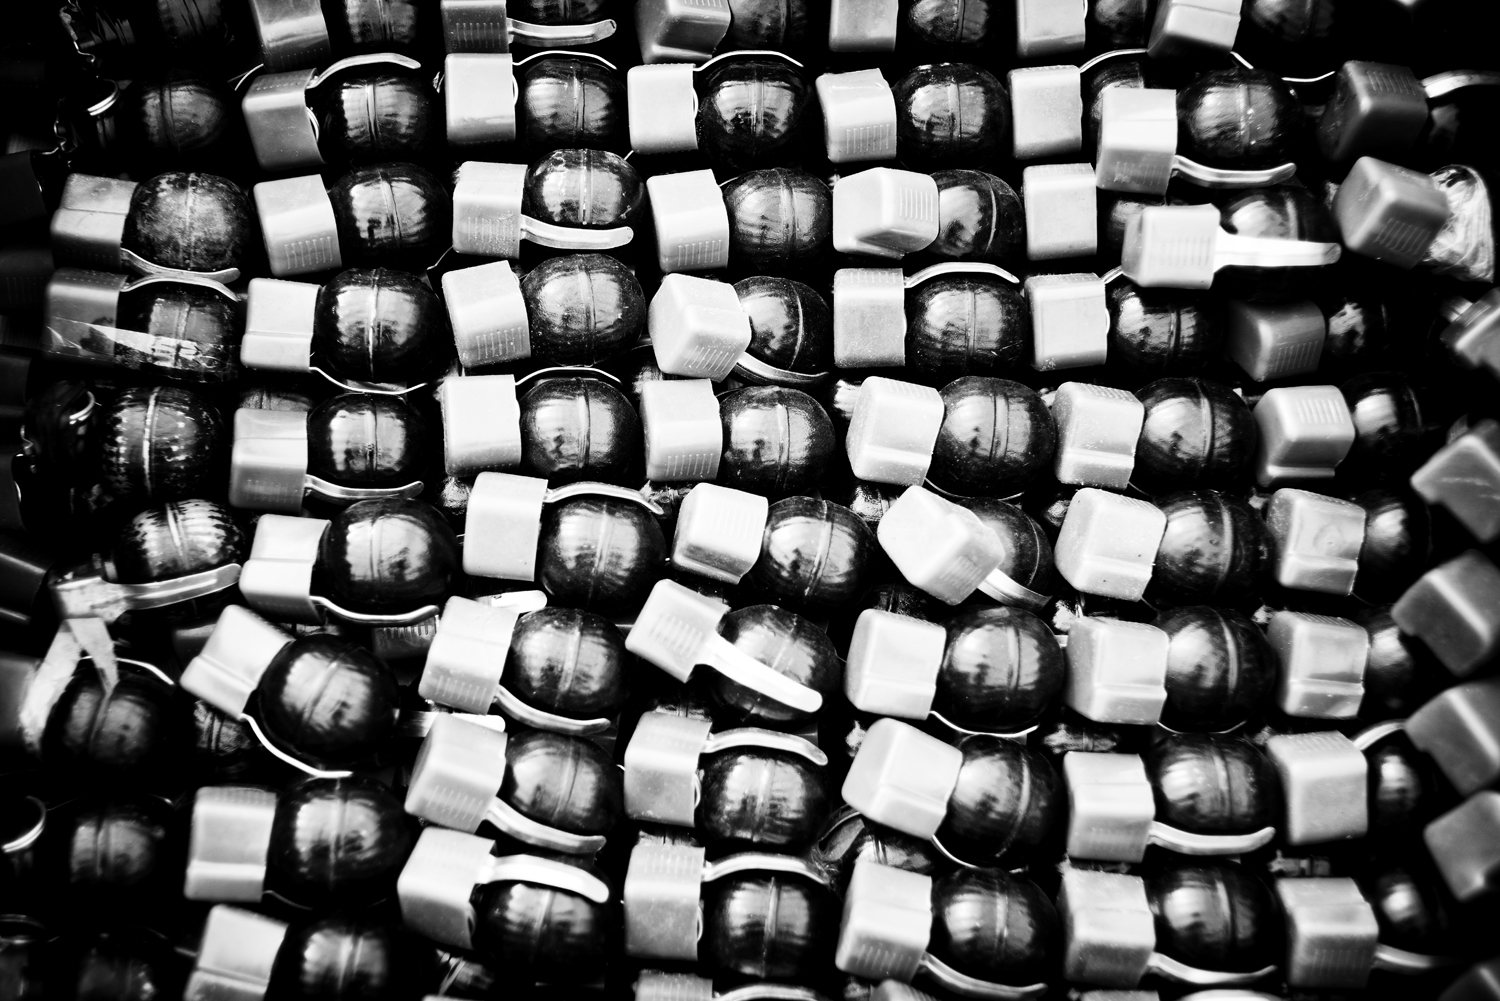 A stash of unused grenades at the headquarters of the French army, which has recovered more than 130 cubic meters of weapons—many of them from China, like these cheap hand grenades. Feb. 6, 2014.